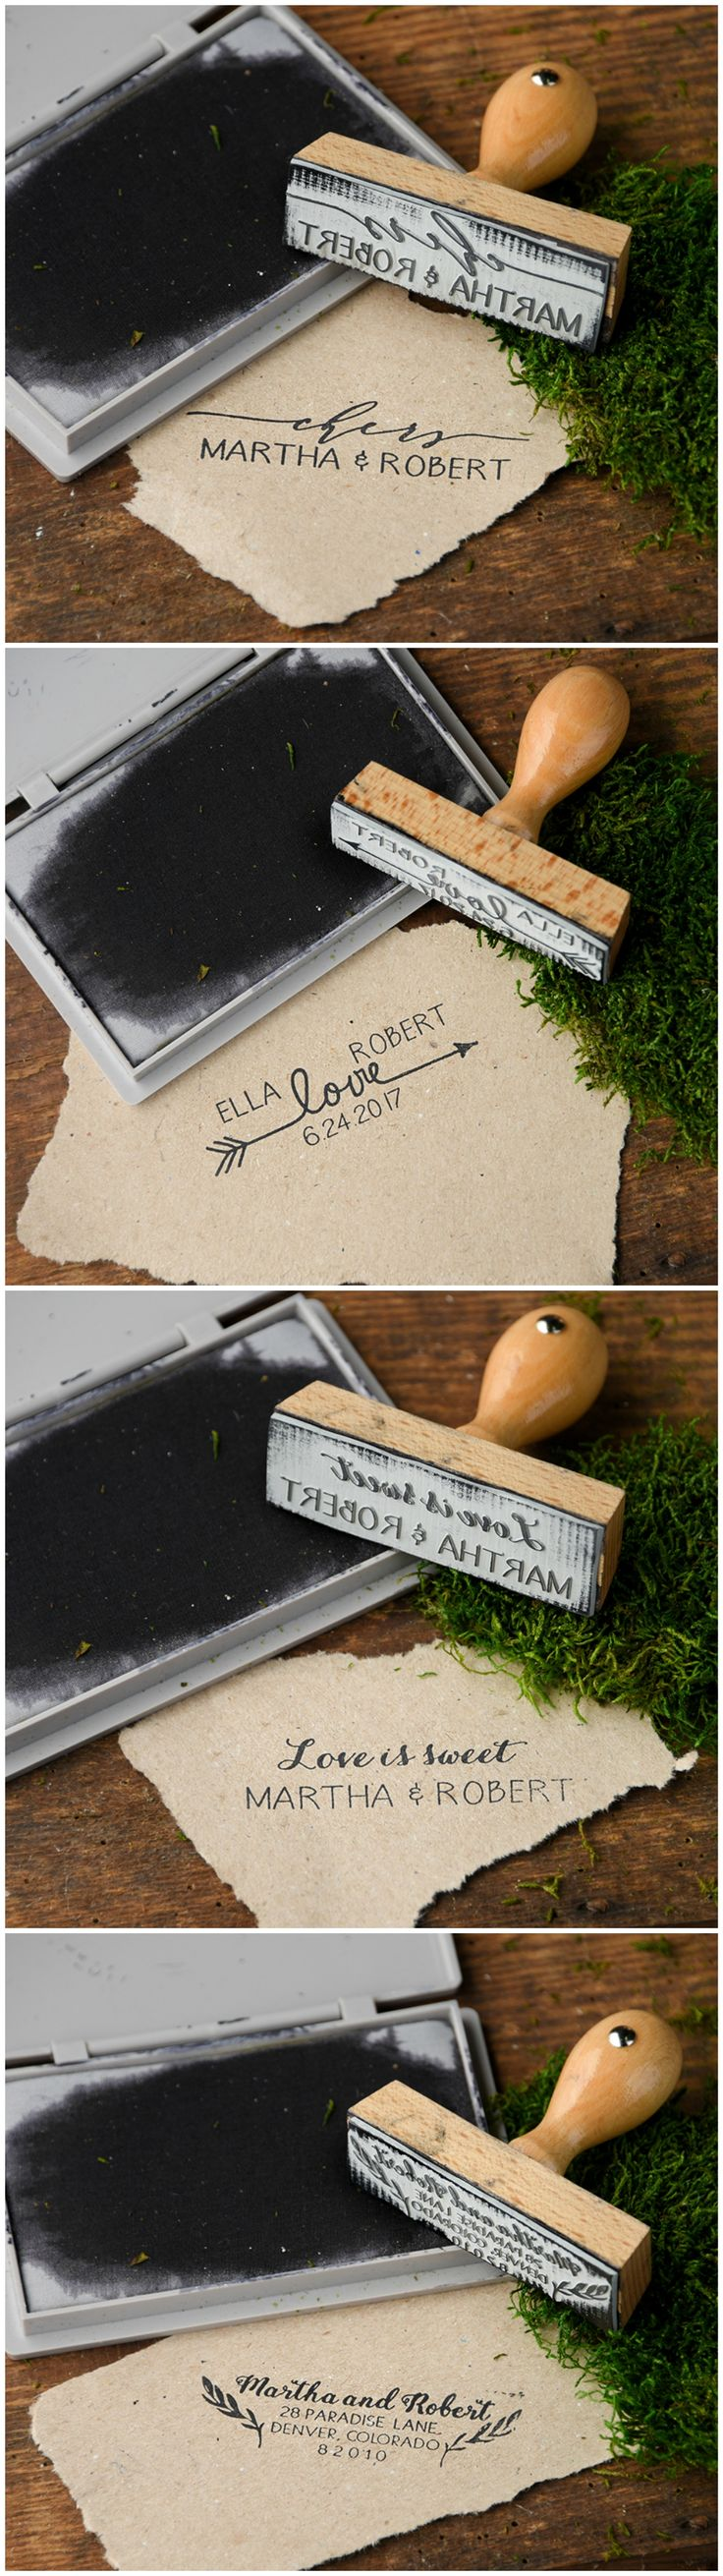 Custom Wooden Wedding Stamps - personalize them with your names and wedding date ! #weddingideas #woodenstamps #stamp #wood #rustic #unique #lovely